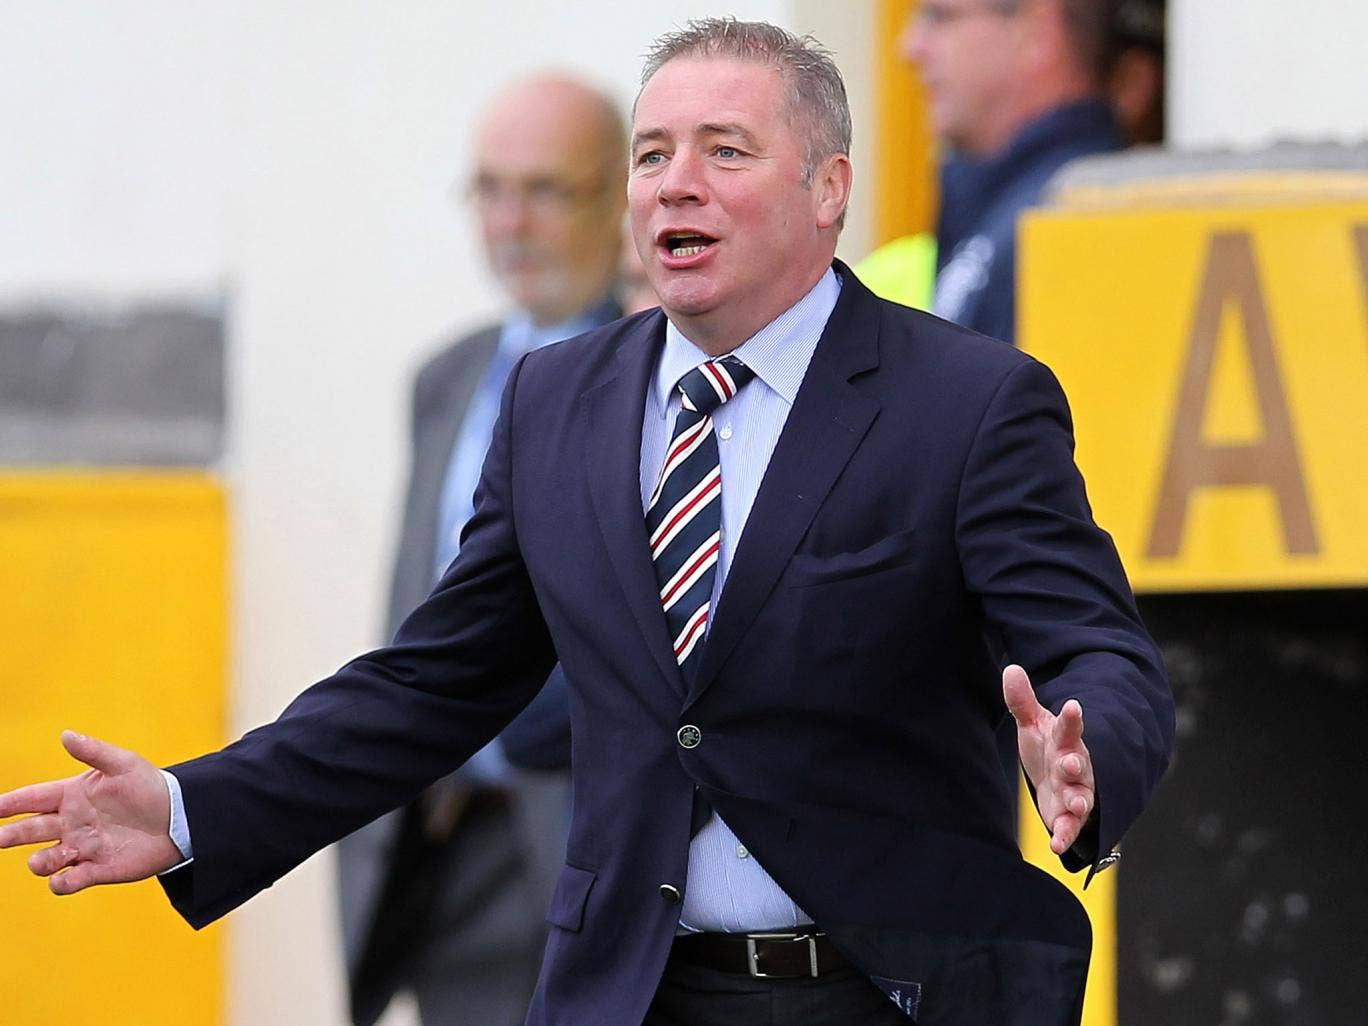 Rangers assistant boss Kenny McDowall believes the turmoil of the last 12 months will make Ally McCoist a better manager